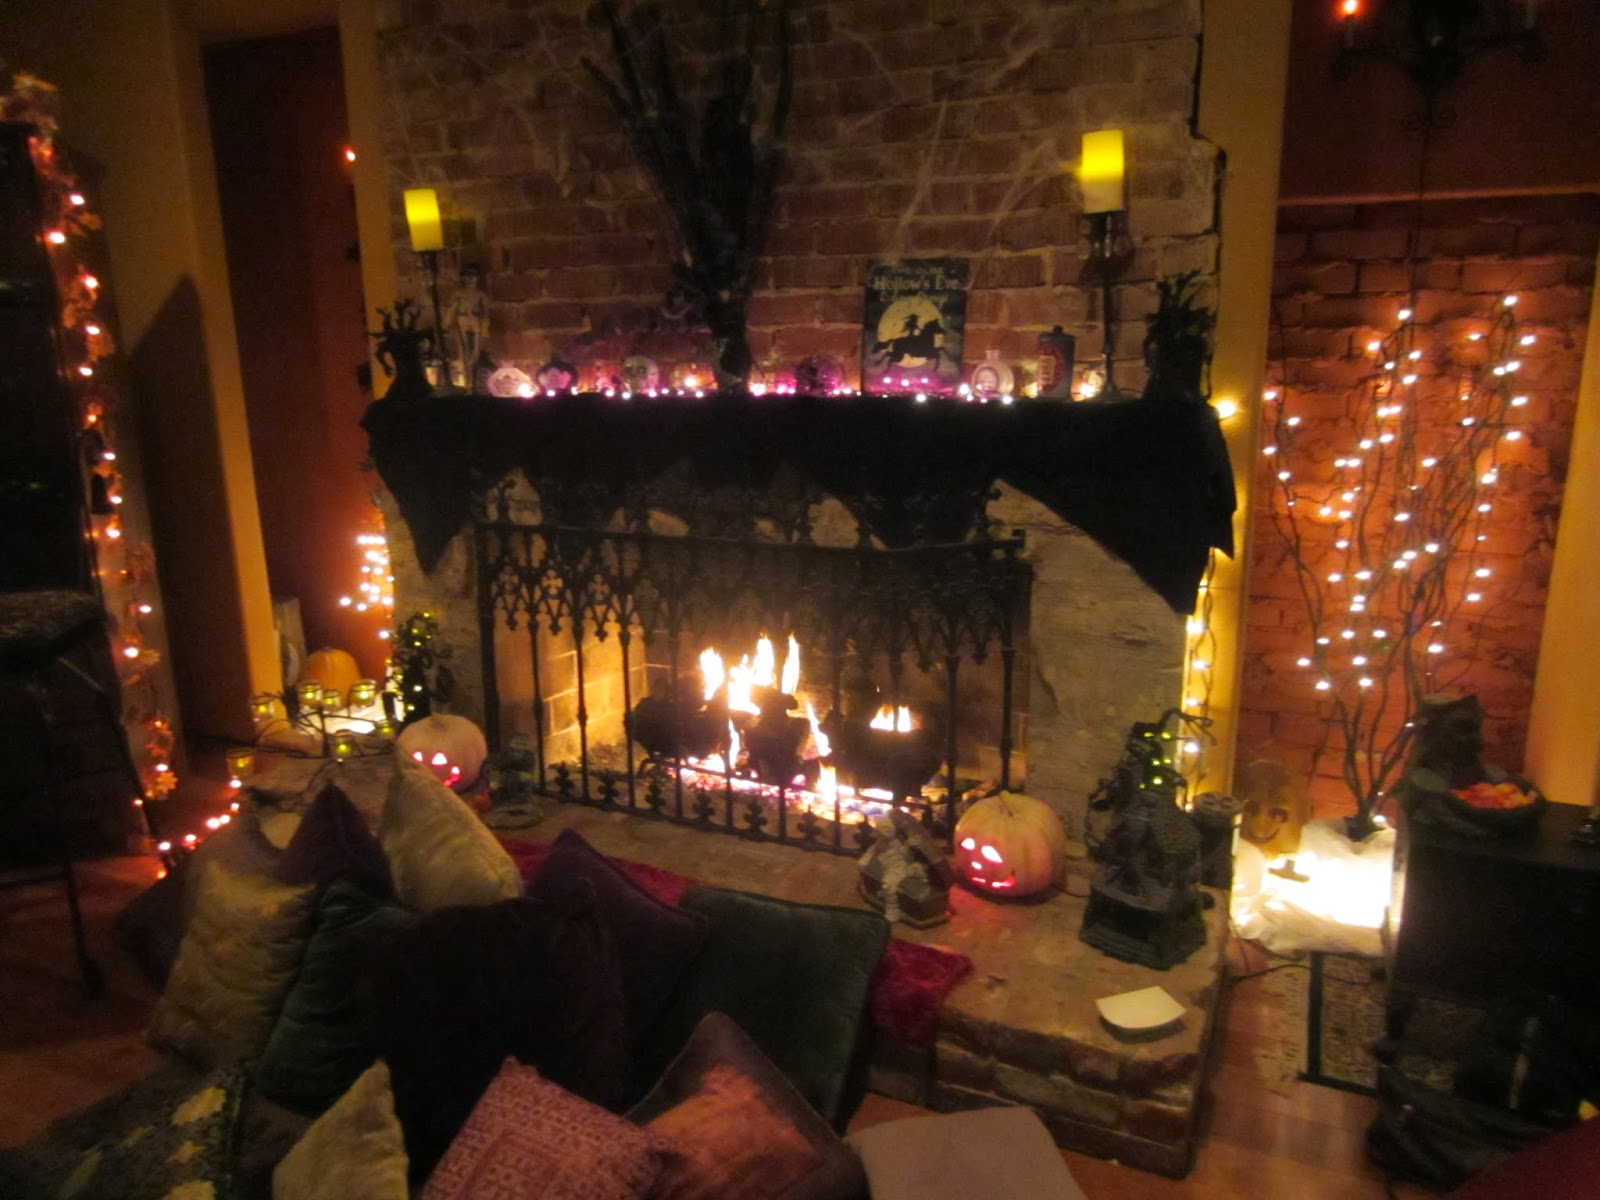 How to decorate your room for halloween inspiration home Diy halloween party decorations